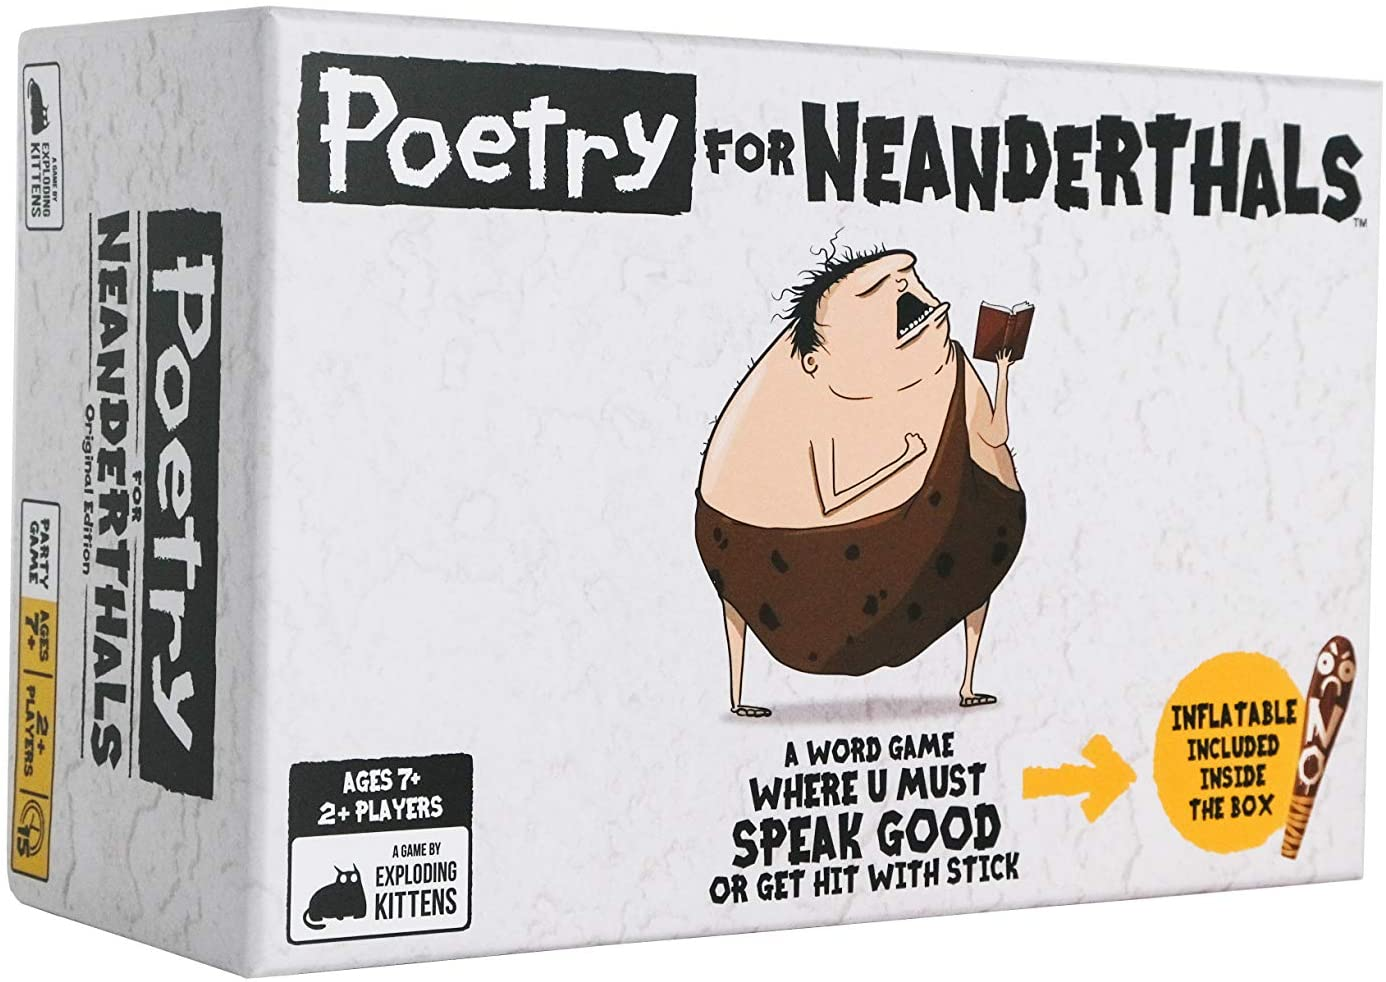 Poetry for Neanderthals by Exploding Kittens - Card Games for Adults, Teens & Kids